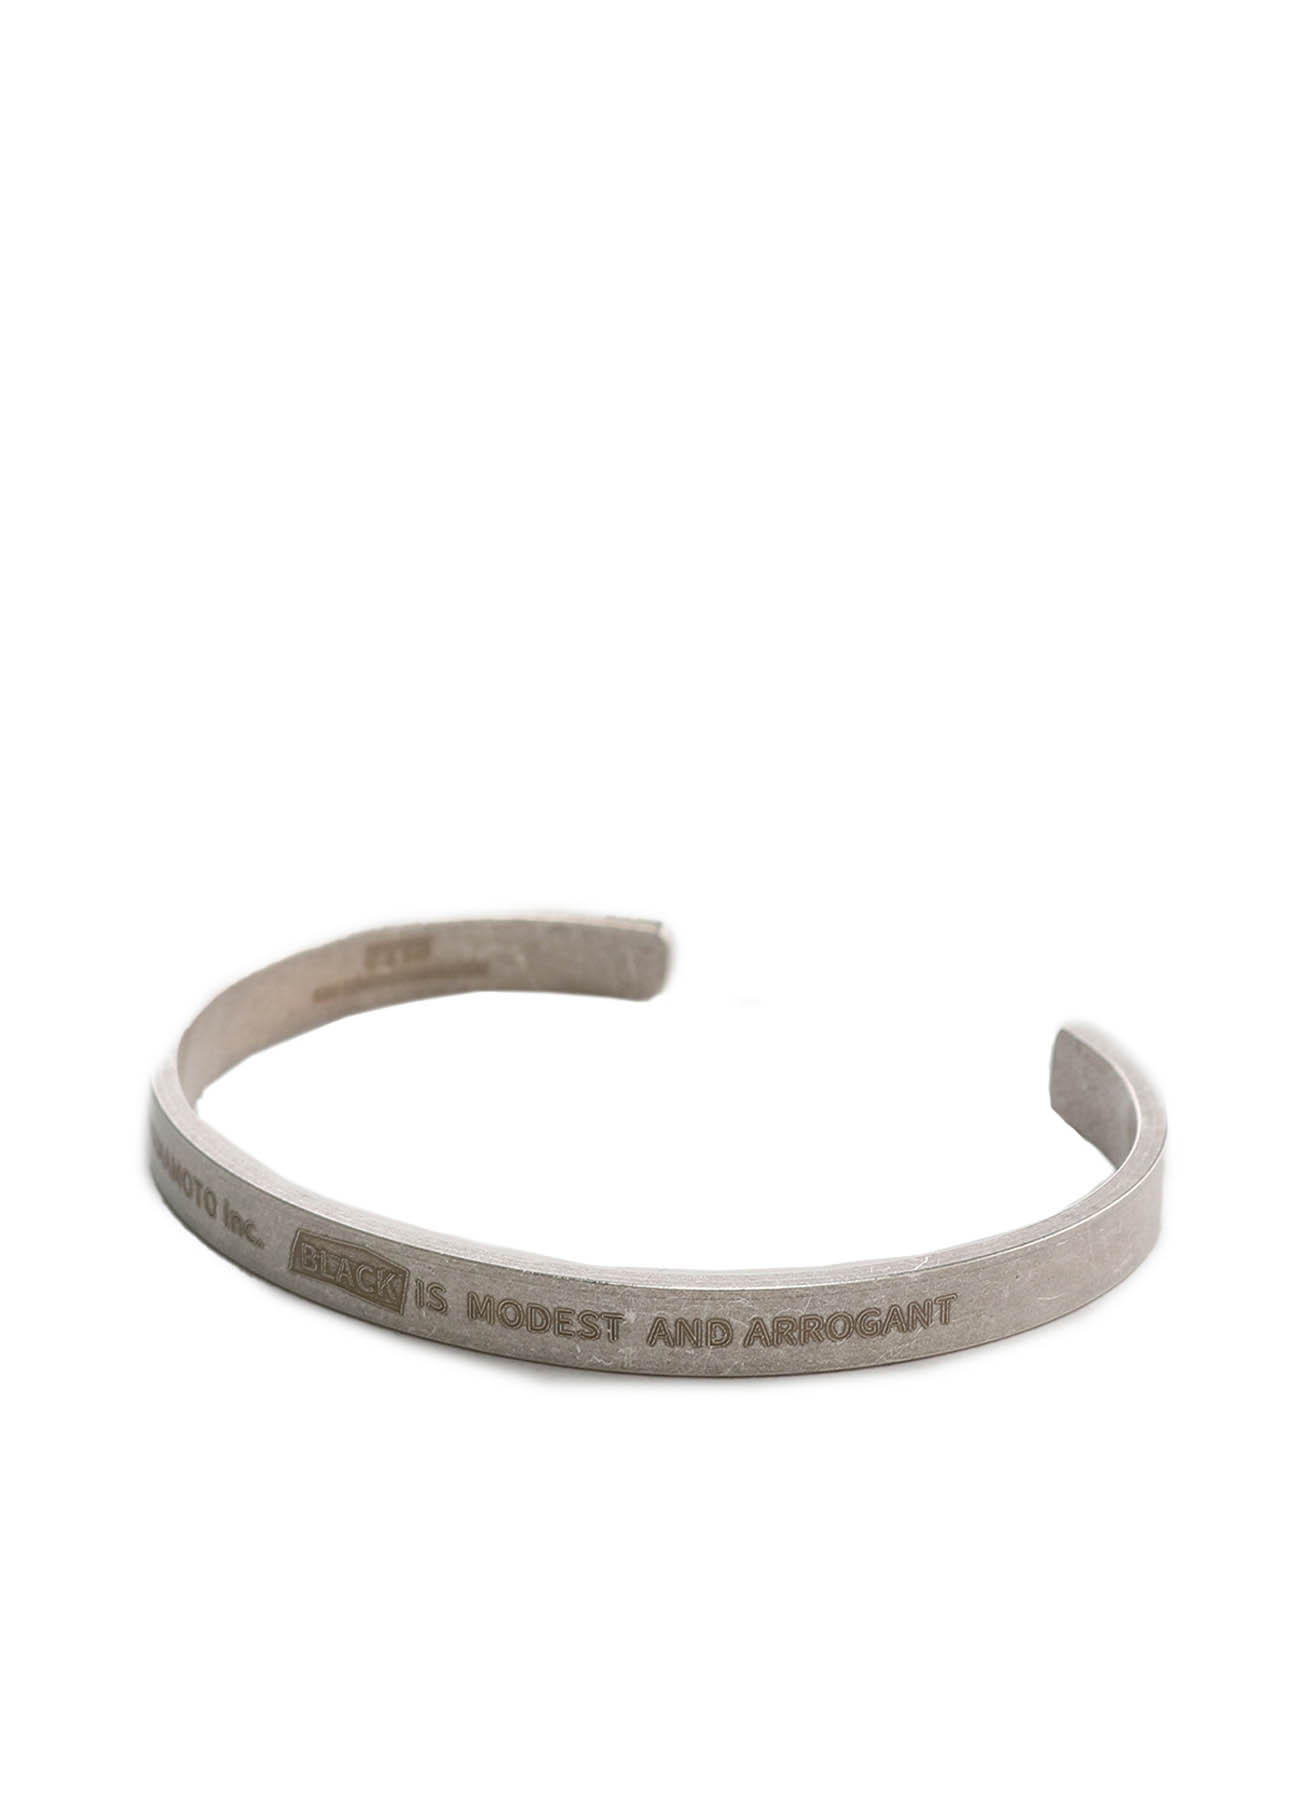 Brass「Black Is Modest」Message Bangle